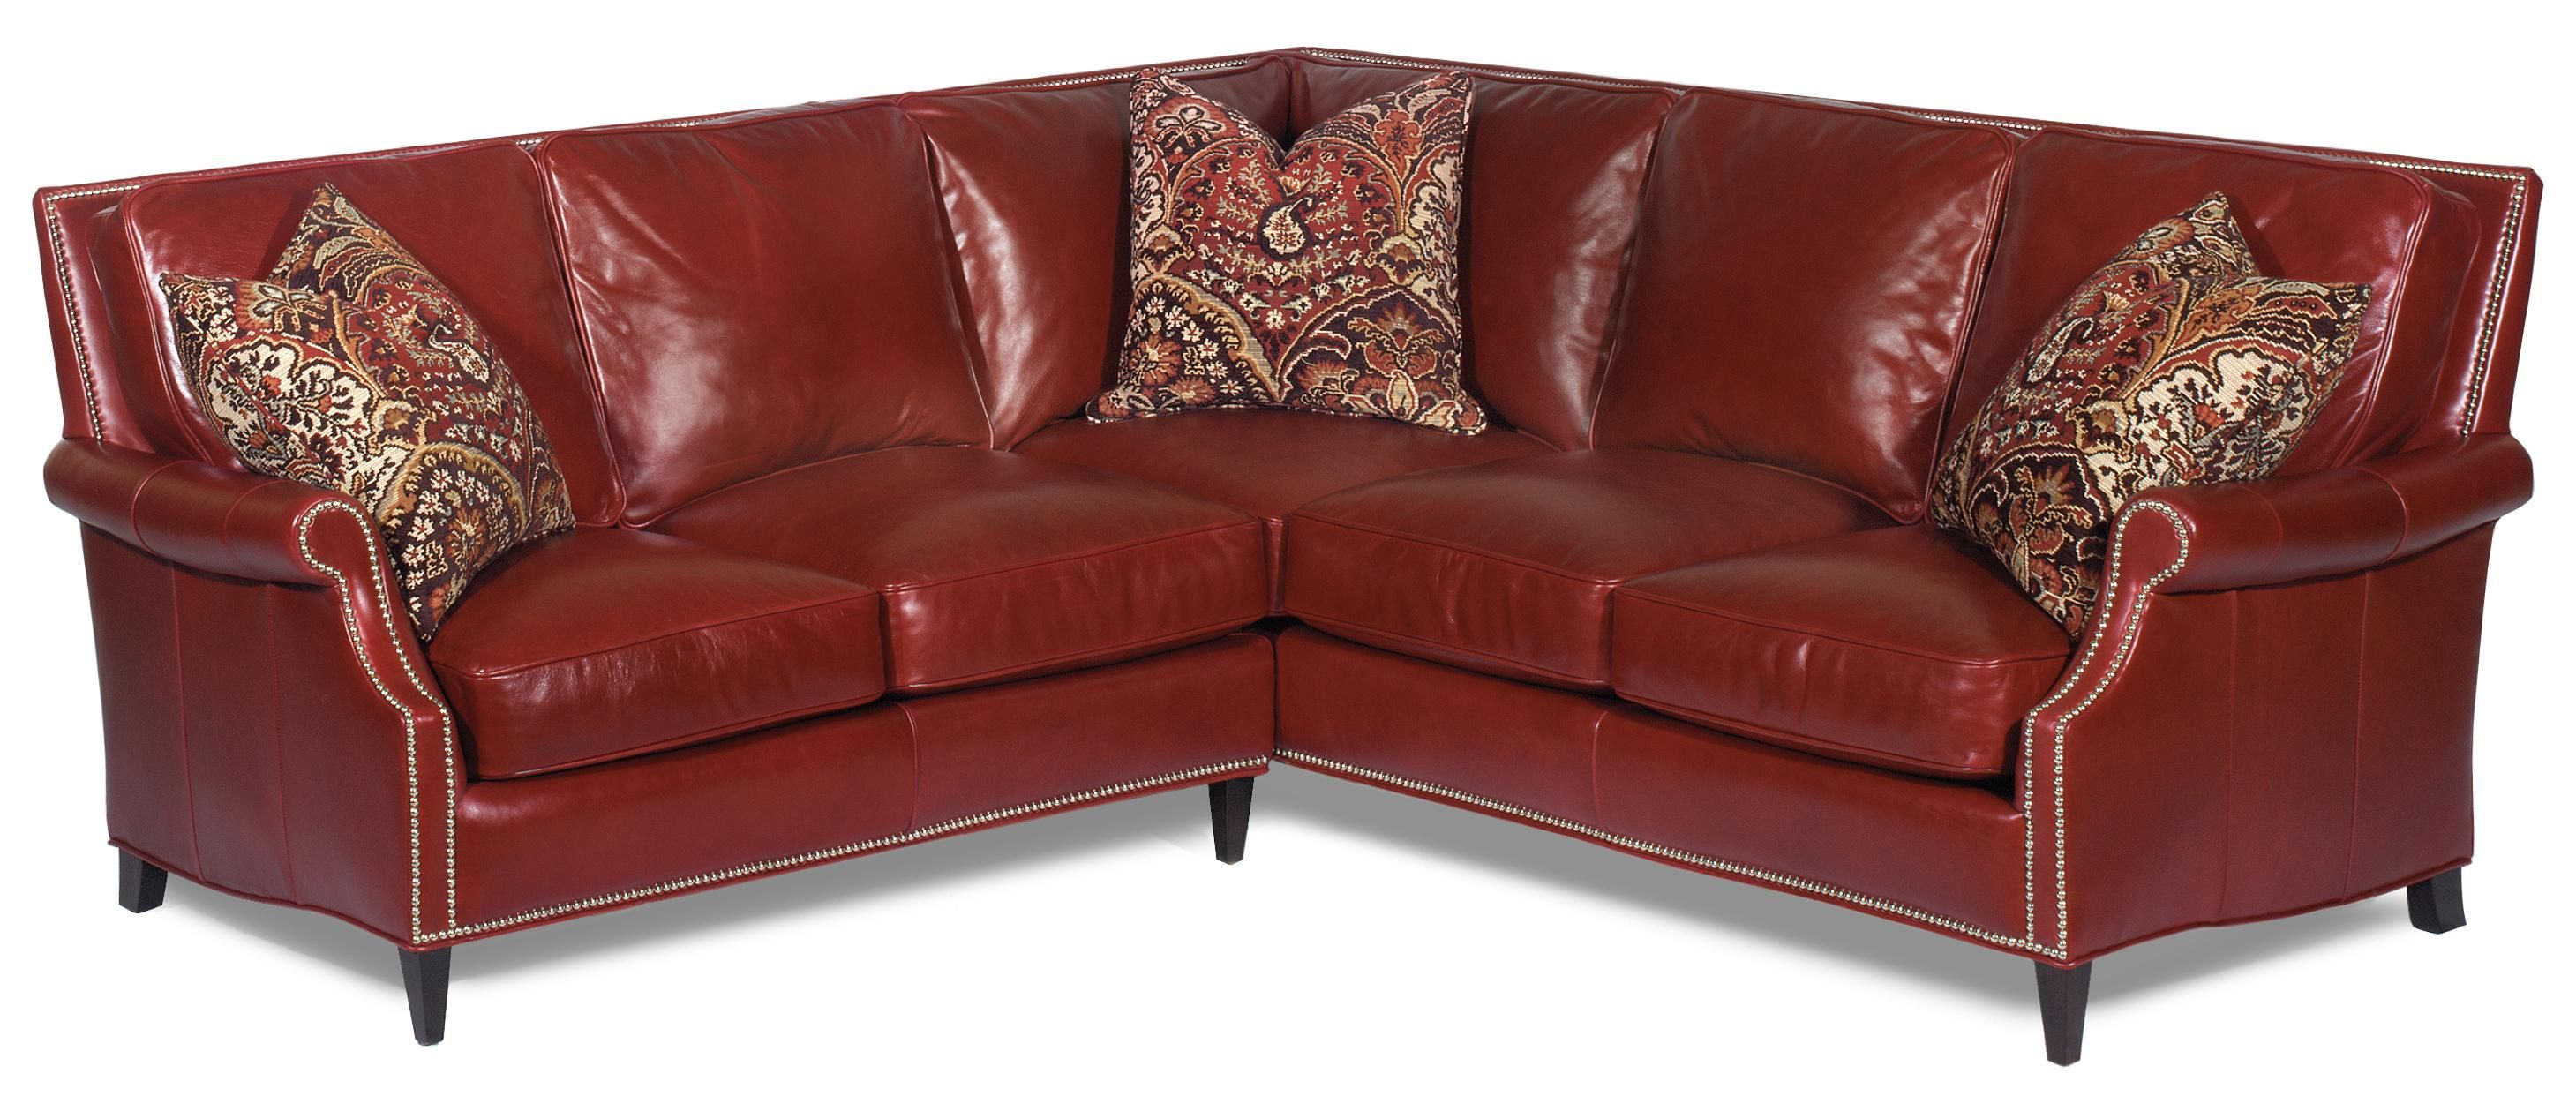 Pleasant Bradington Young Tappan Contemporary Leather Sectional With Andrewgaddart Wooden Chair Designs For Living Room Andrewgaddartcom